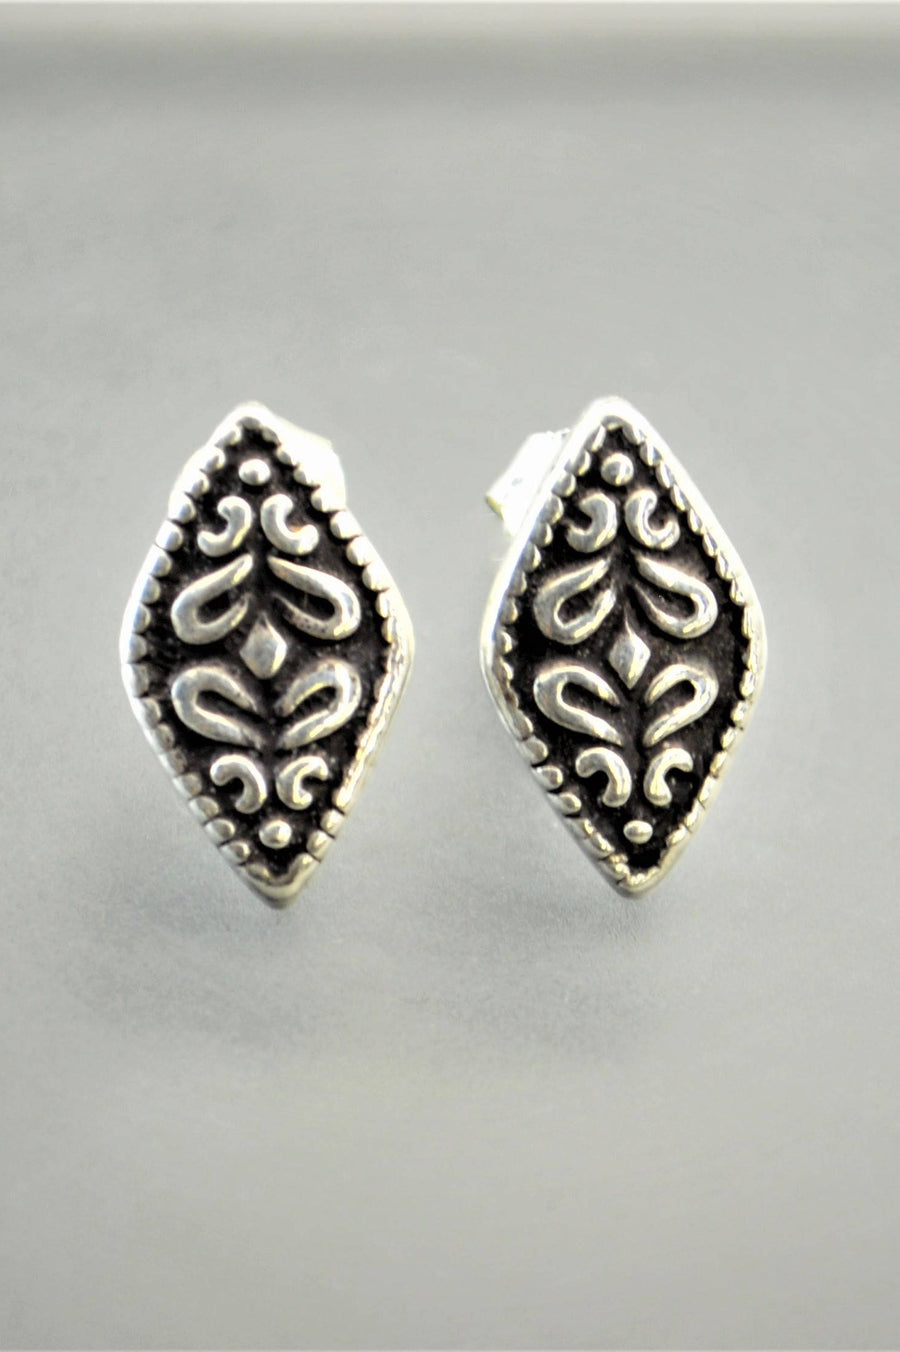 Silver Sterling Bohemian Stud Earrings